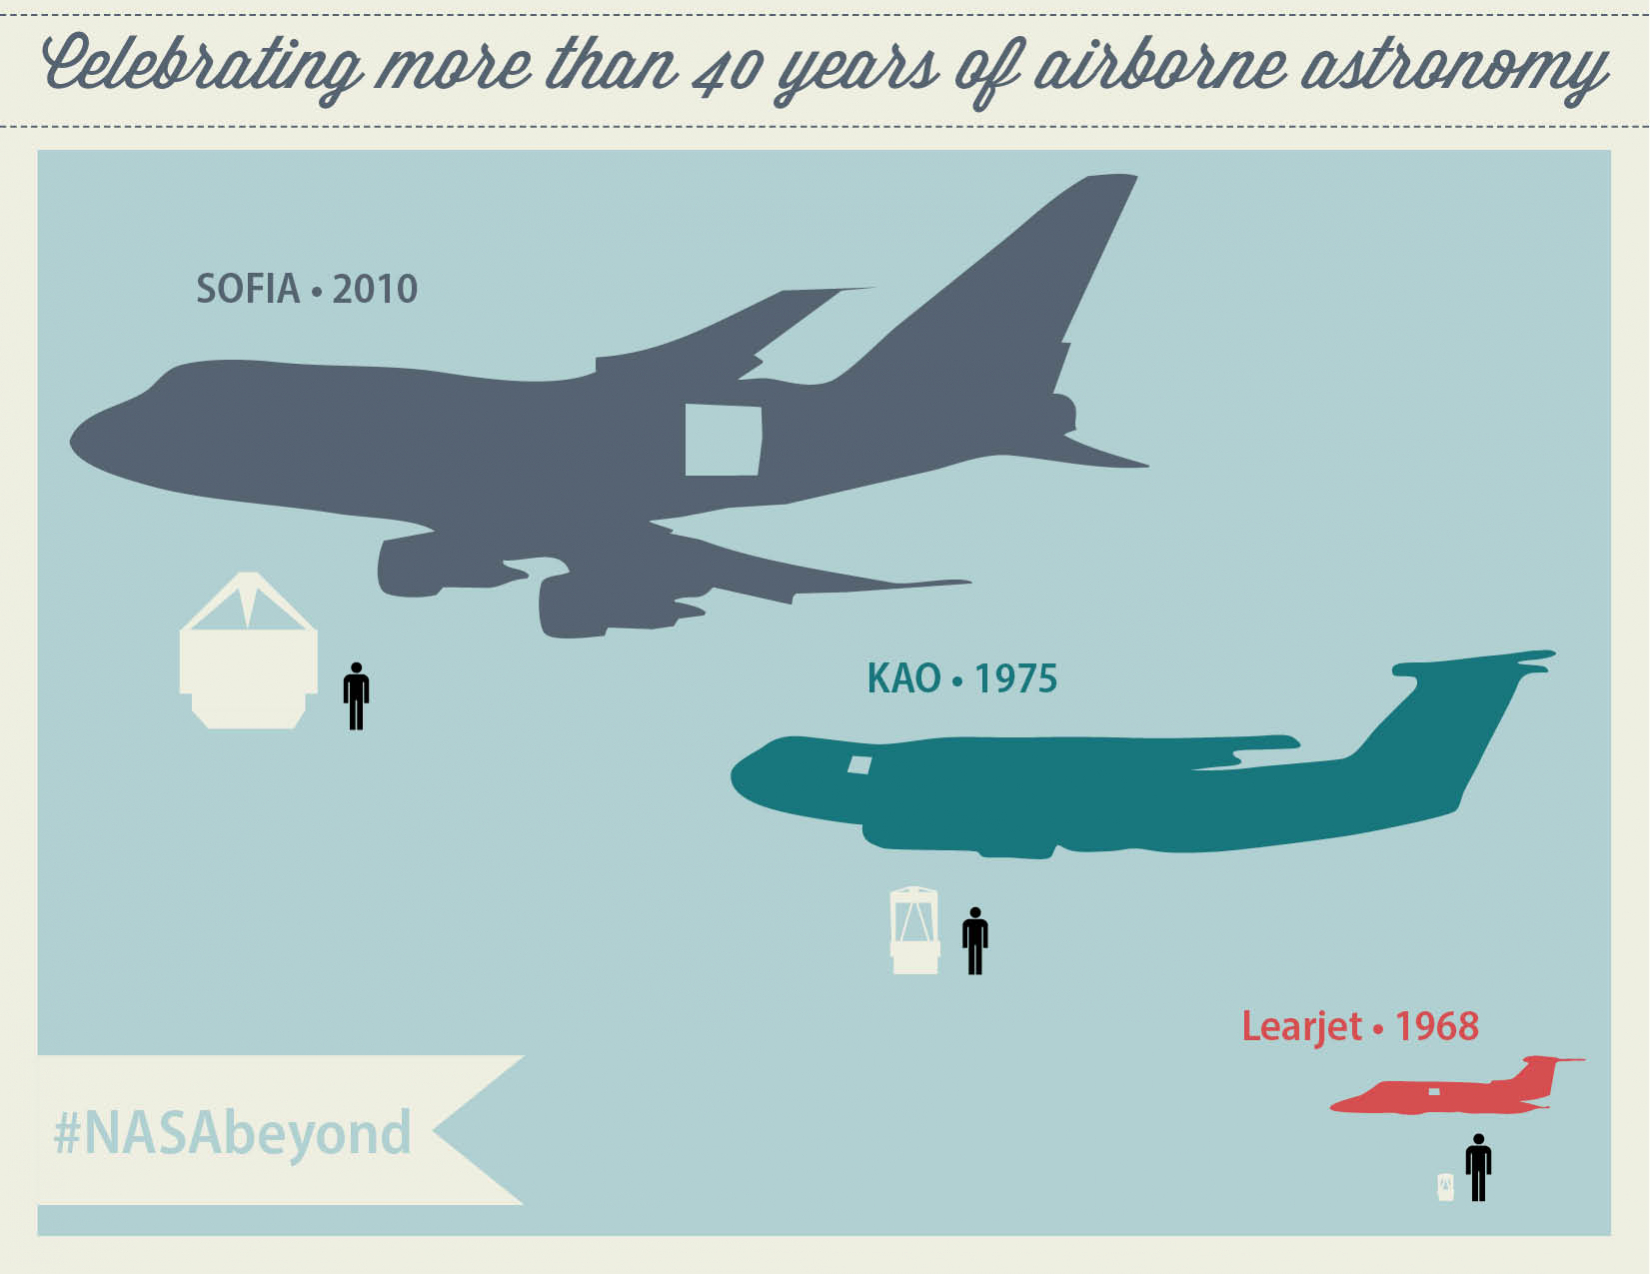 Celebrating more than 40 years of airborne astronomy. SOFIA 2010, KAO 1975, Learjet 1968.